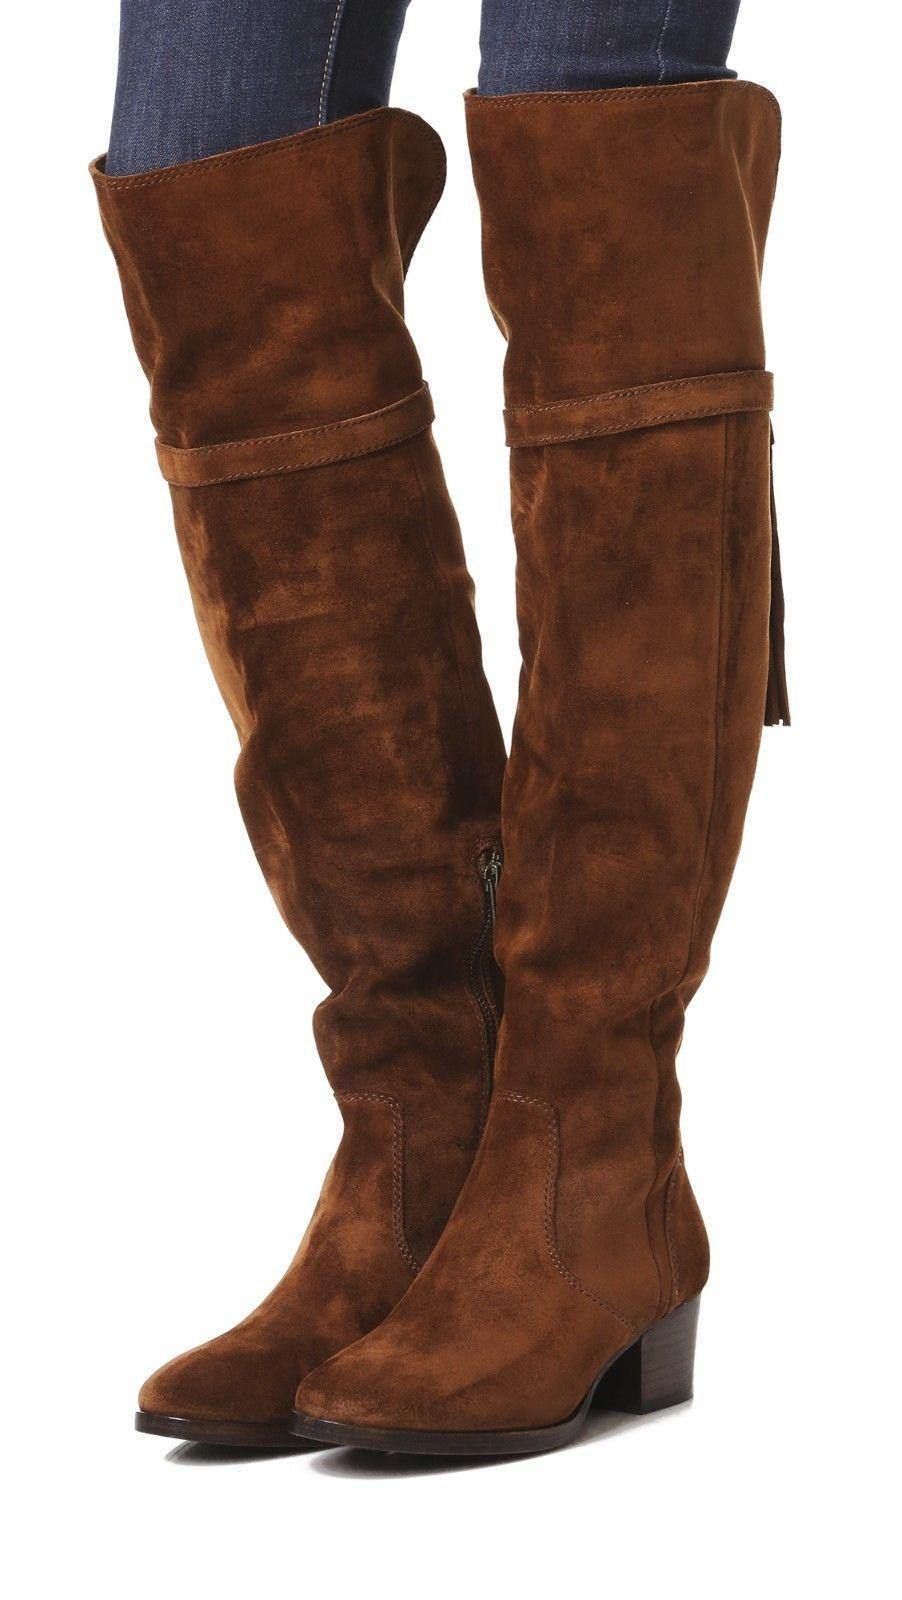 62dba3ee8a7 Frye Clara Tassel Over The Knee Boot Stretch Back Flat Bootie 10 Wood Suede  Otk